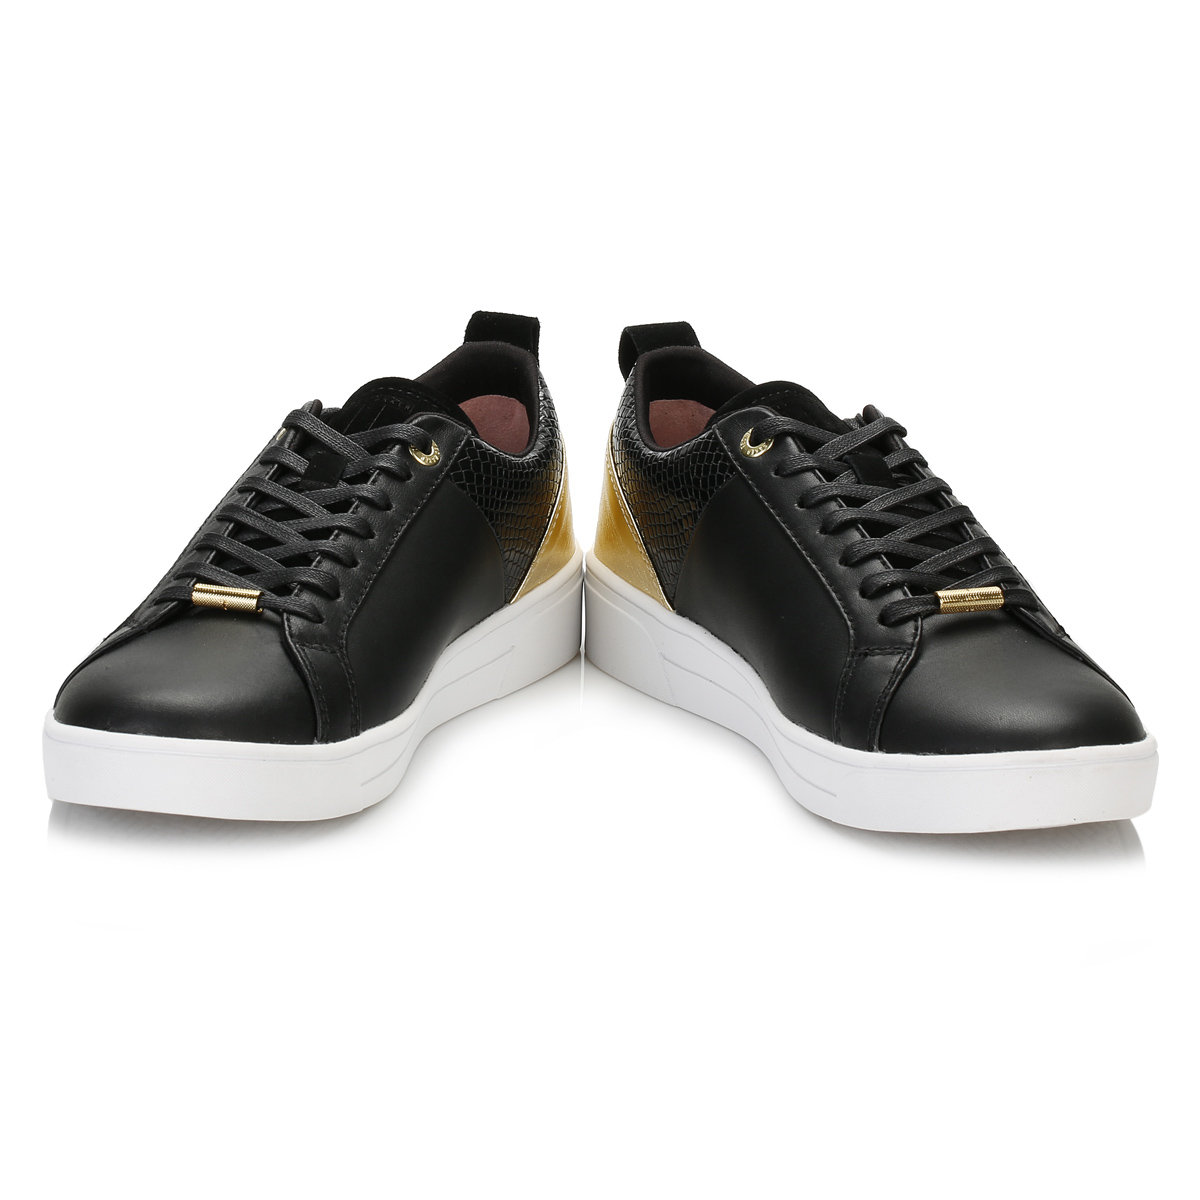 5917f82d26b8f0 Ted Baker Womens Trainers Black Rose Gold Kulei Shoes Lace Up Casual Flats